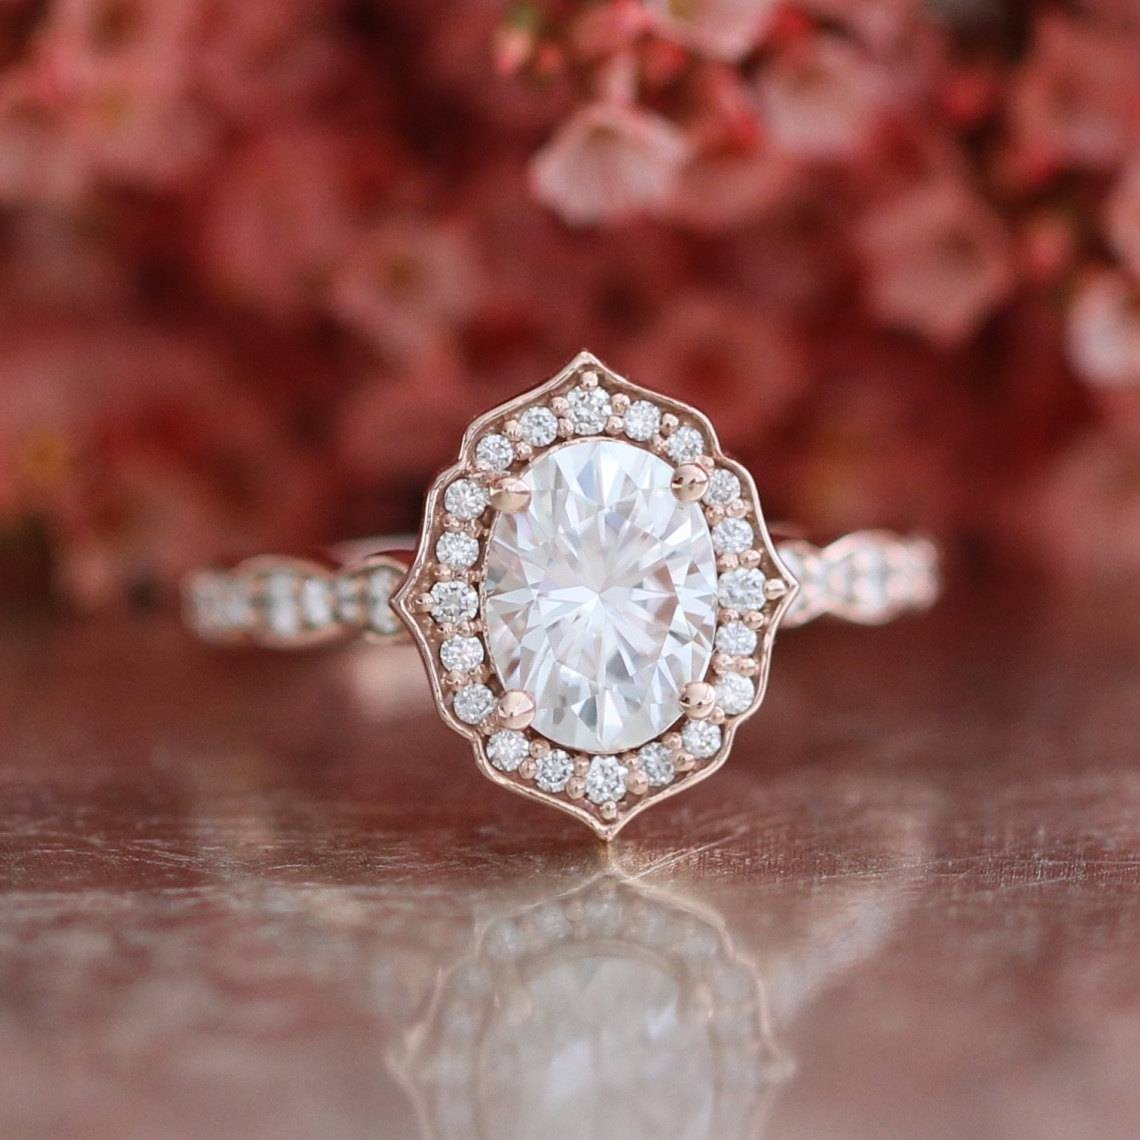 Oval Cut Forever One Moissanite Vintage Floral Engagement Ring Within Etsy Vintage Wedding Bands (View 8 of 15)